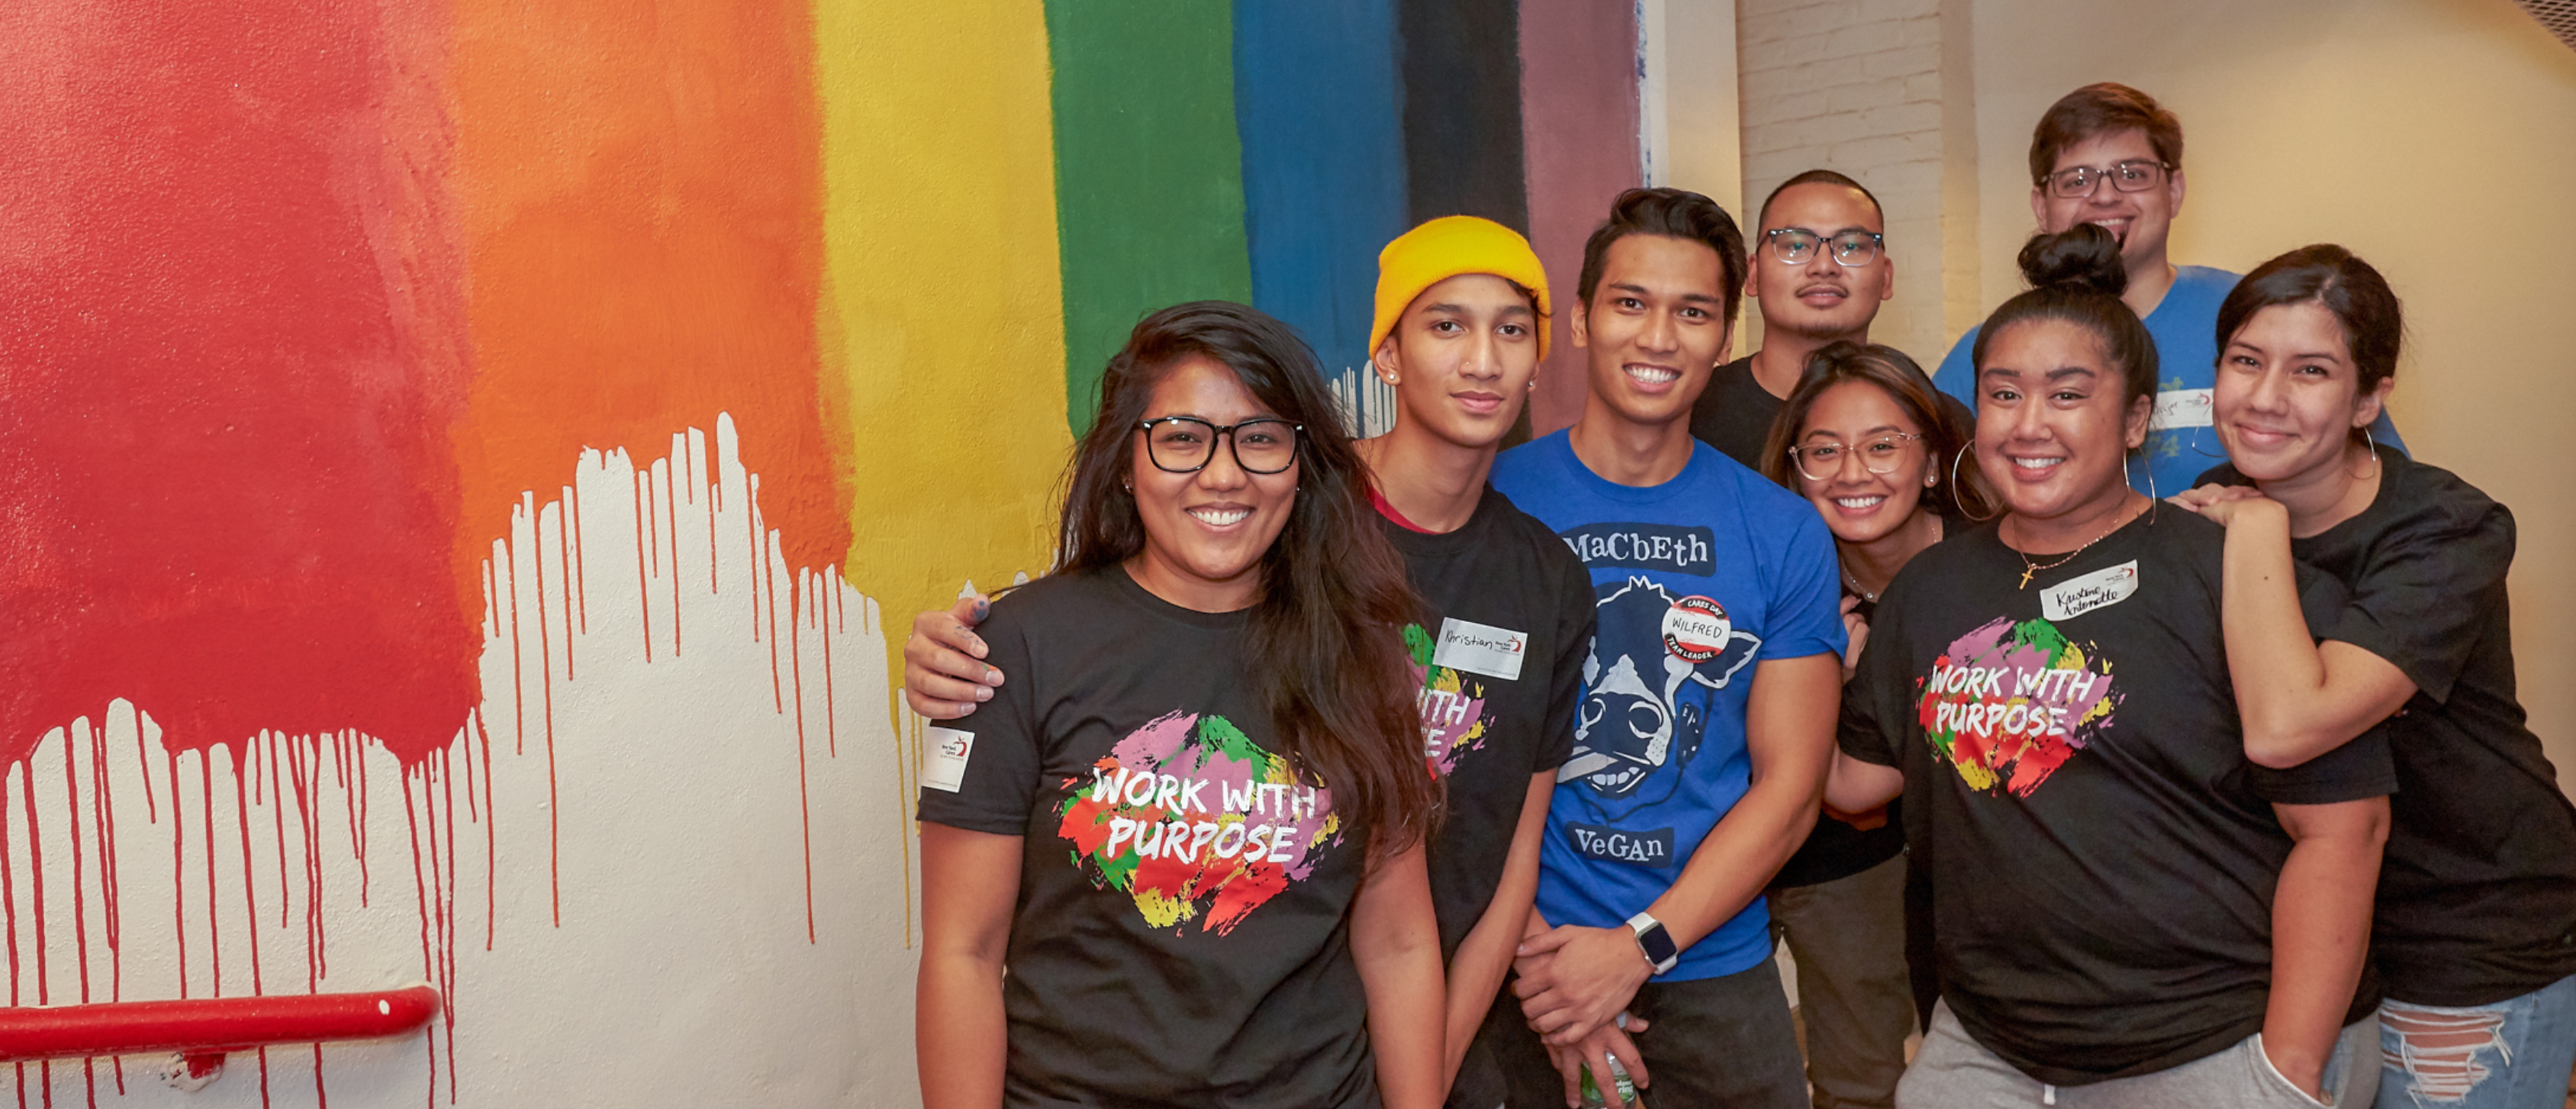 Group of volunteers in front of colorful mural